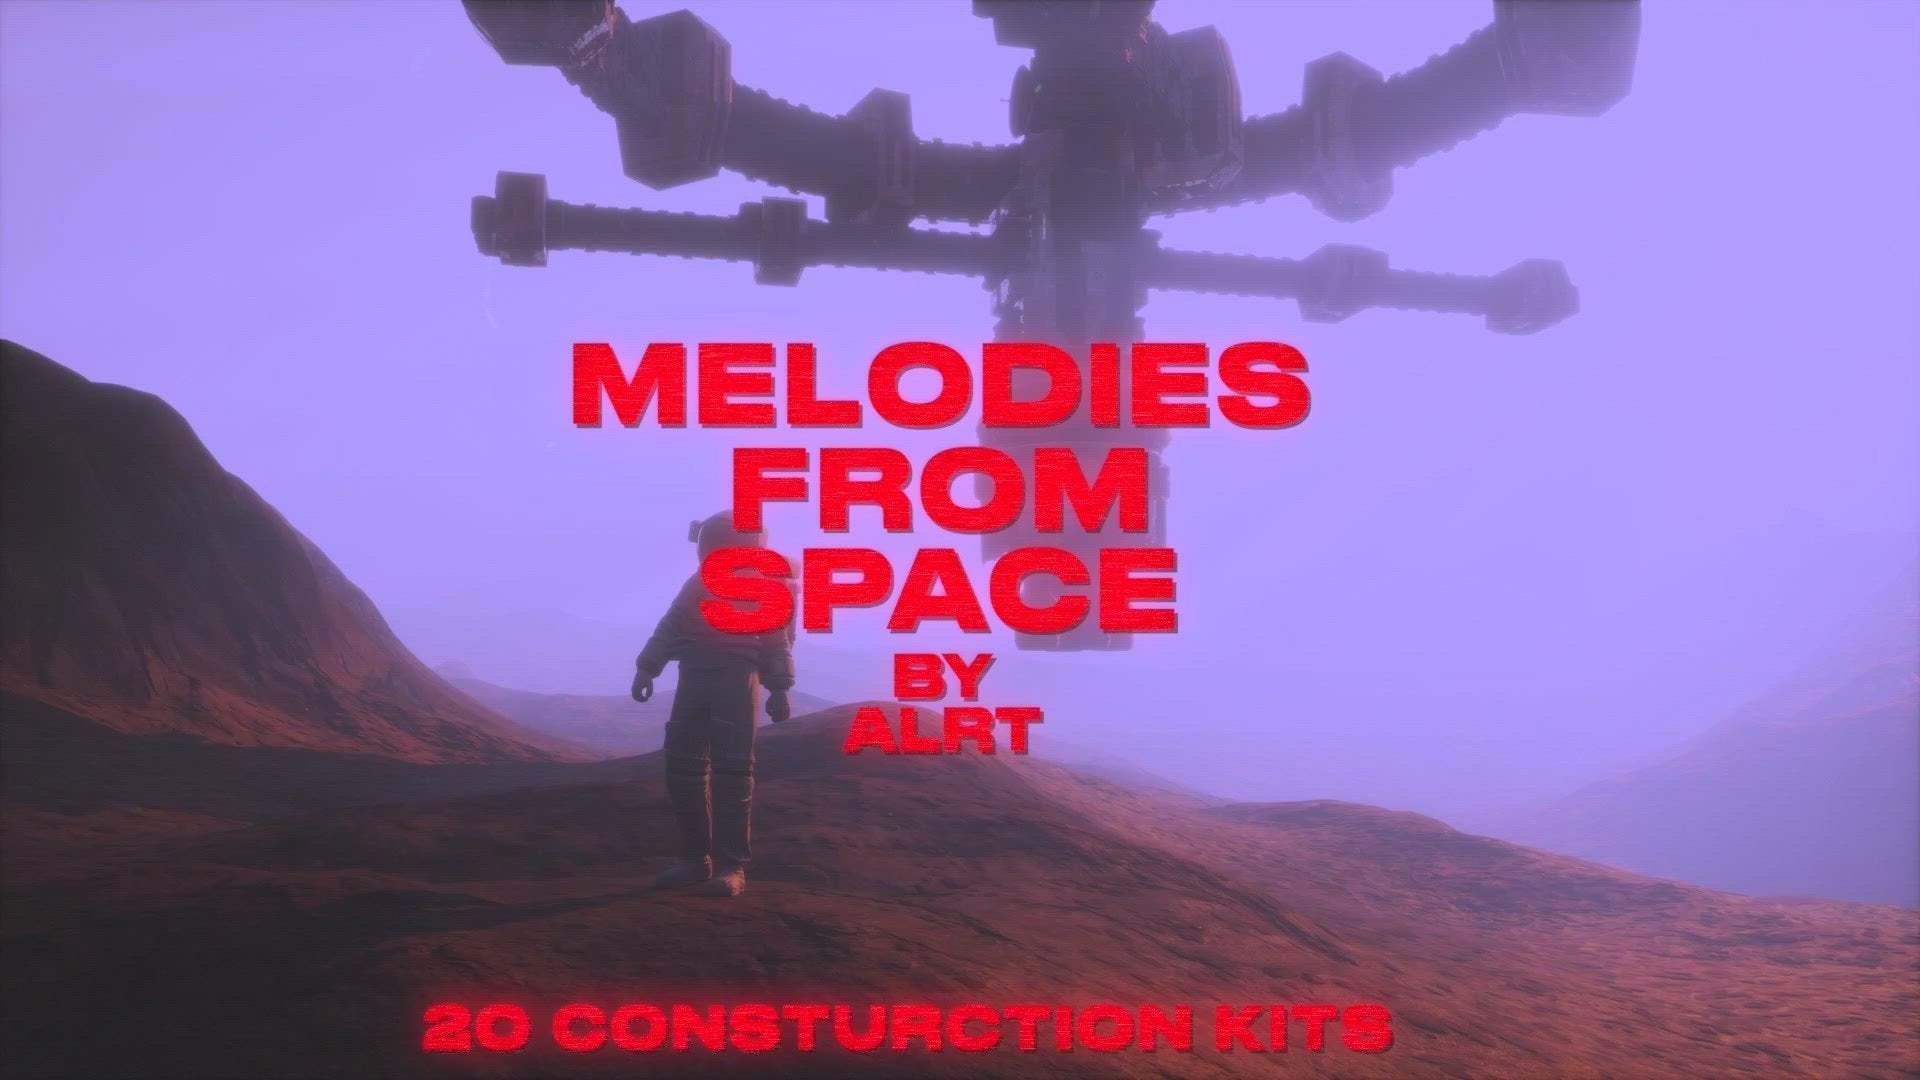 MELODIES FROM SPACE